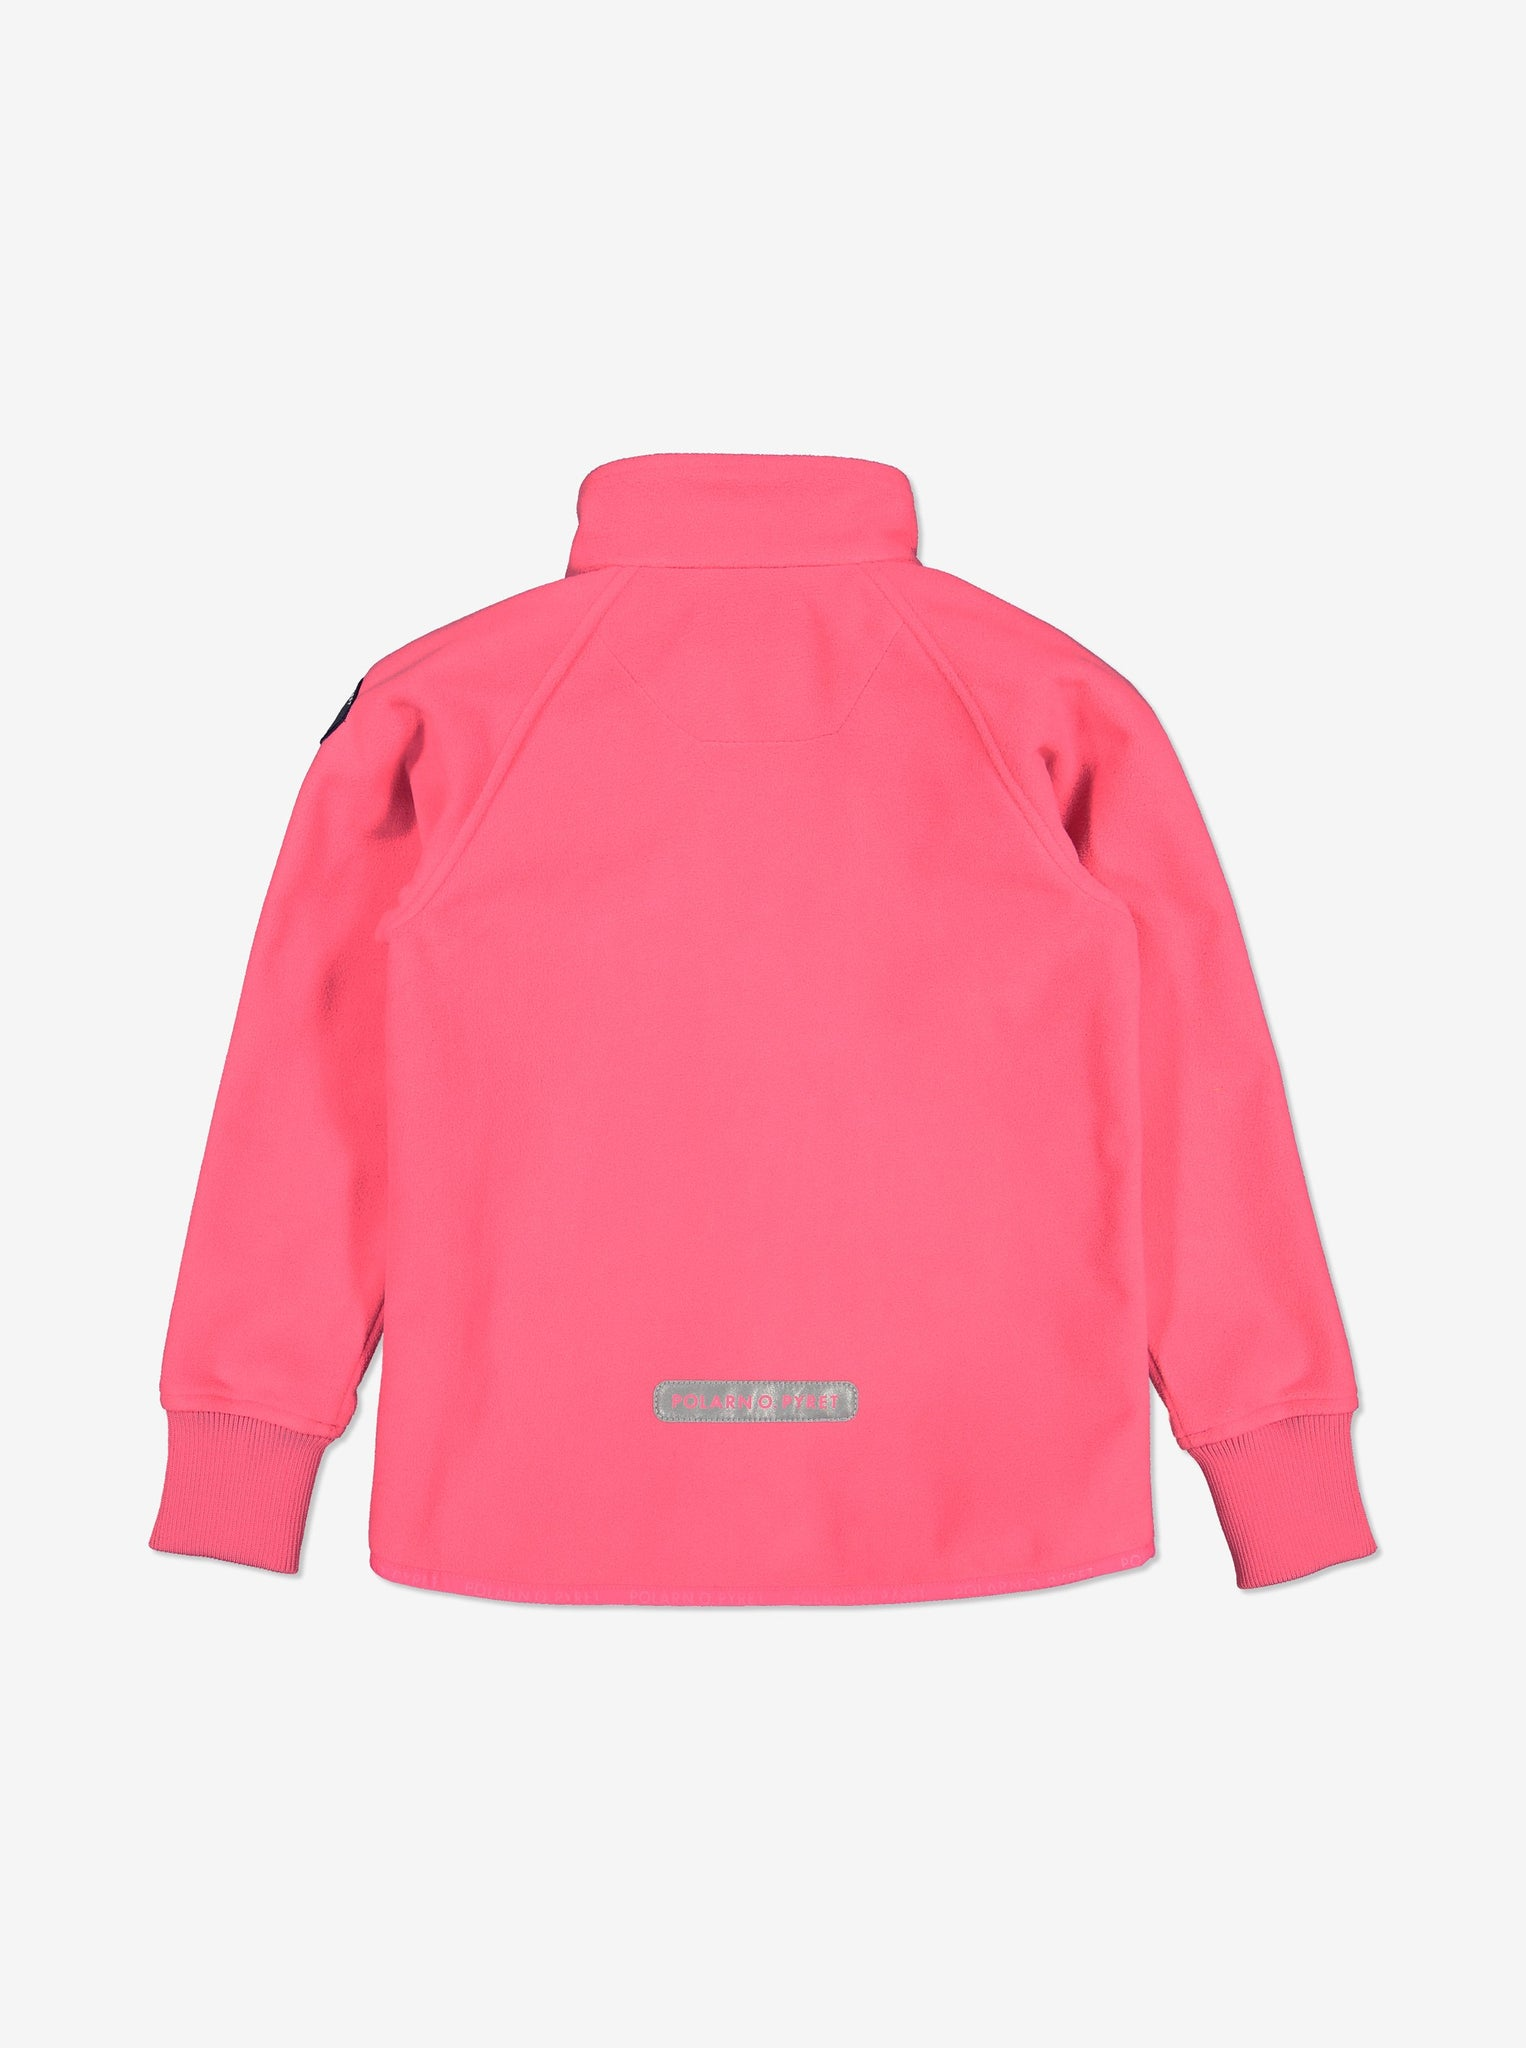 Back view of pink, kids waterproof fleece jacket with cuff thumbholes, reflector zips, made of soft and warm fabric.